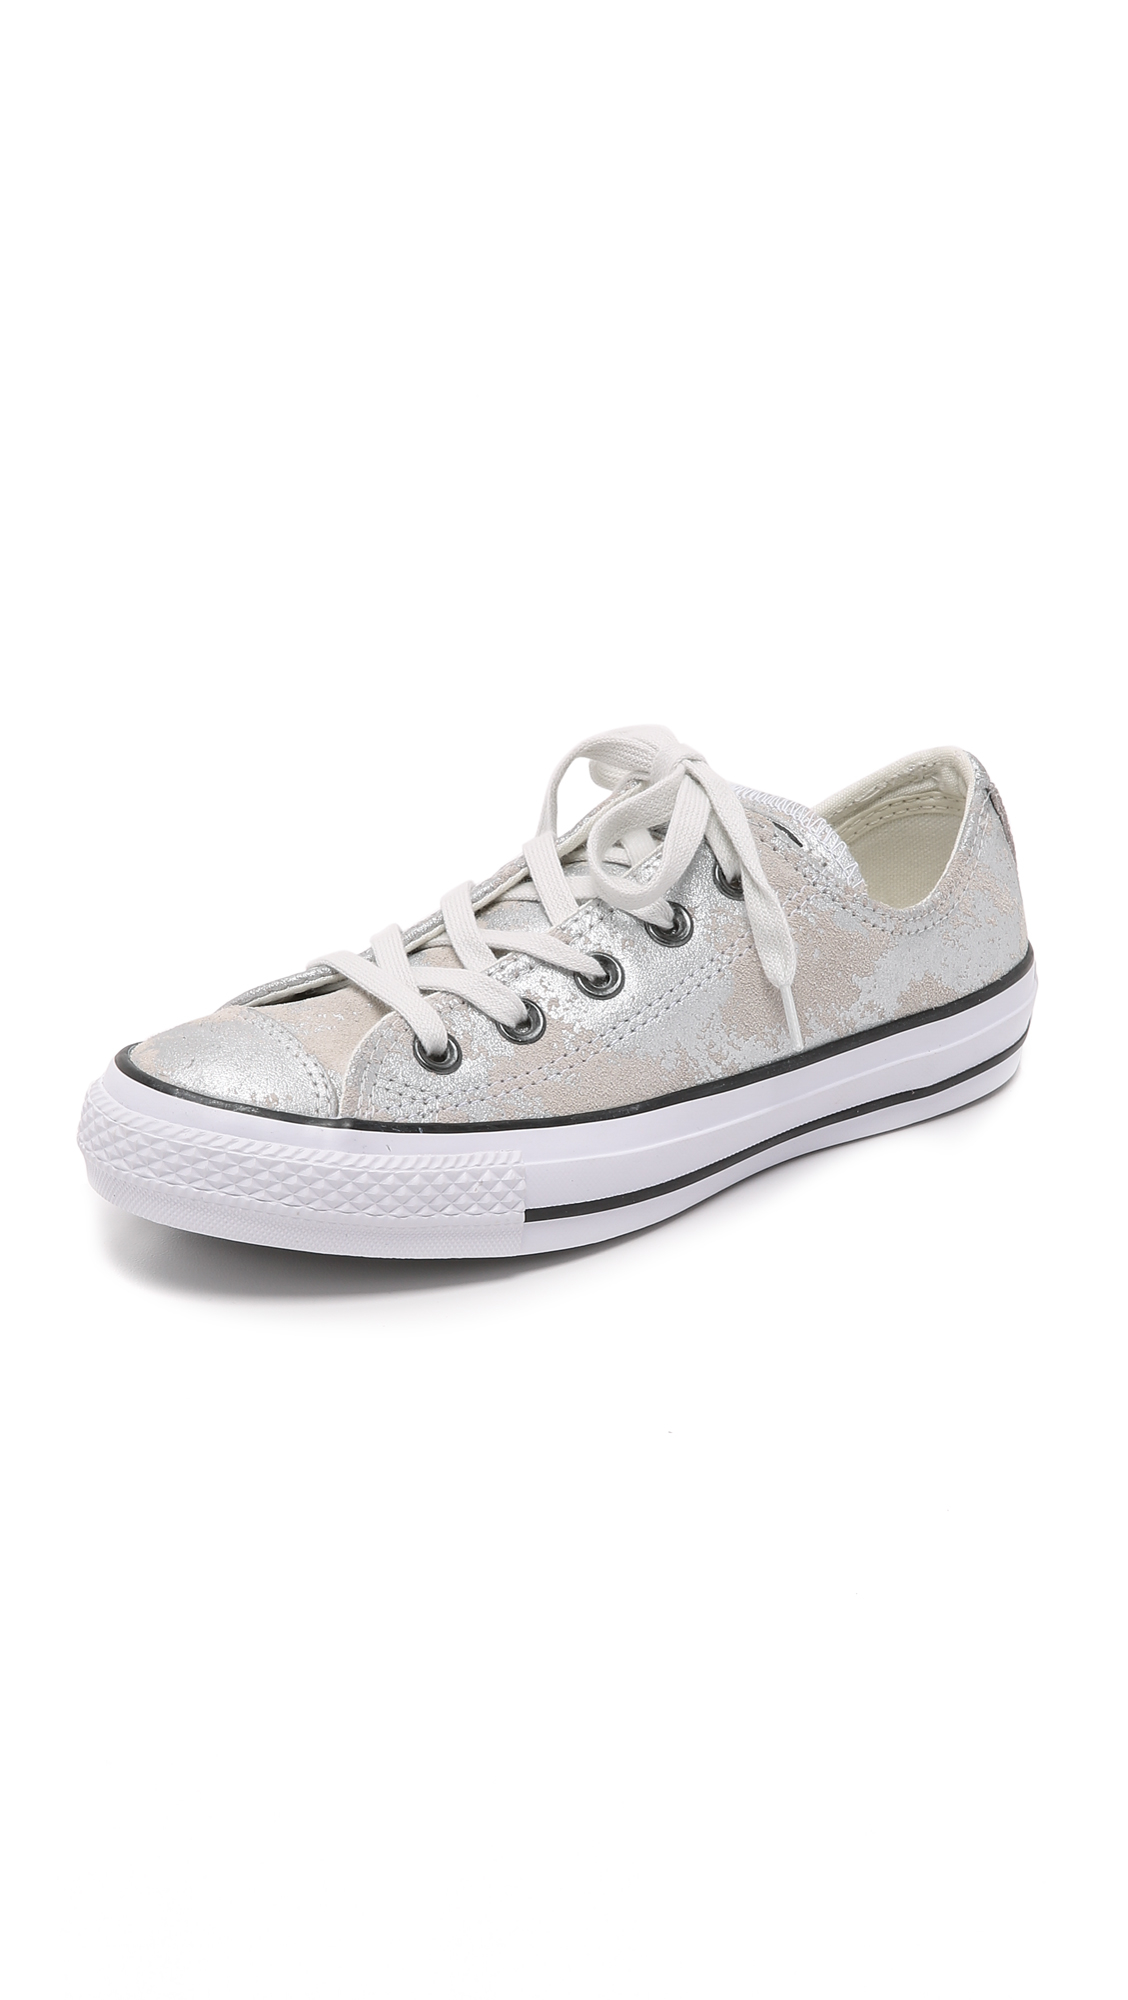 5a00937ca6dc Lyst - Converse Chuck Taylor All Star Oxford Sneakers - Silver mouse ...